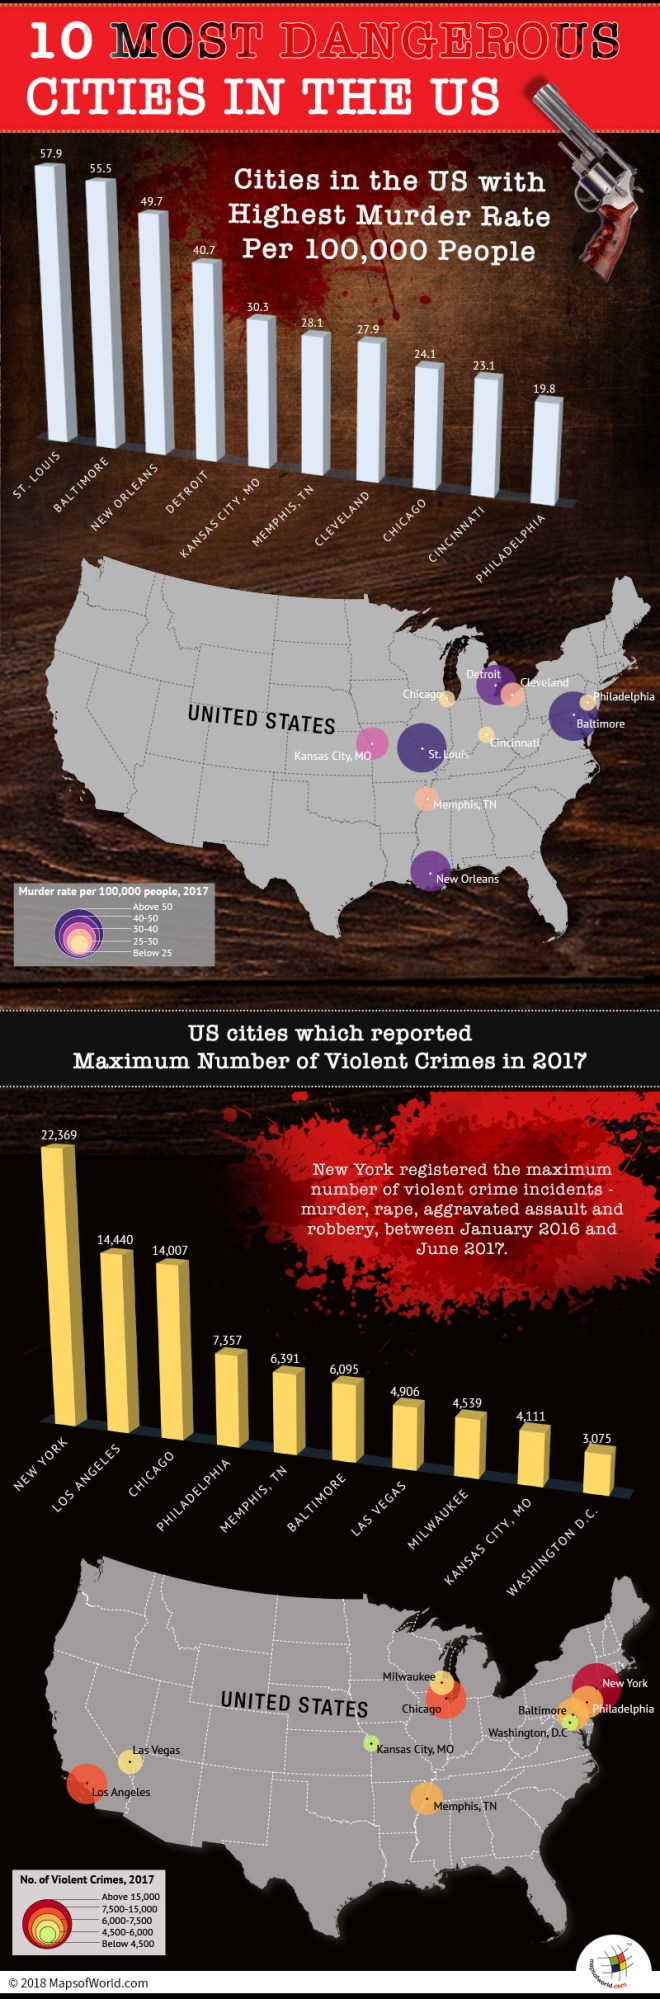 Infographic showing 10 Most Dangerous Cities in USA